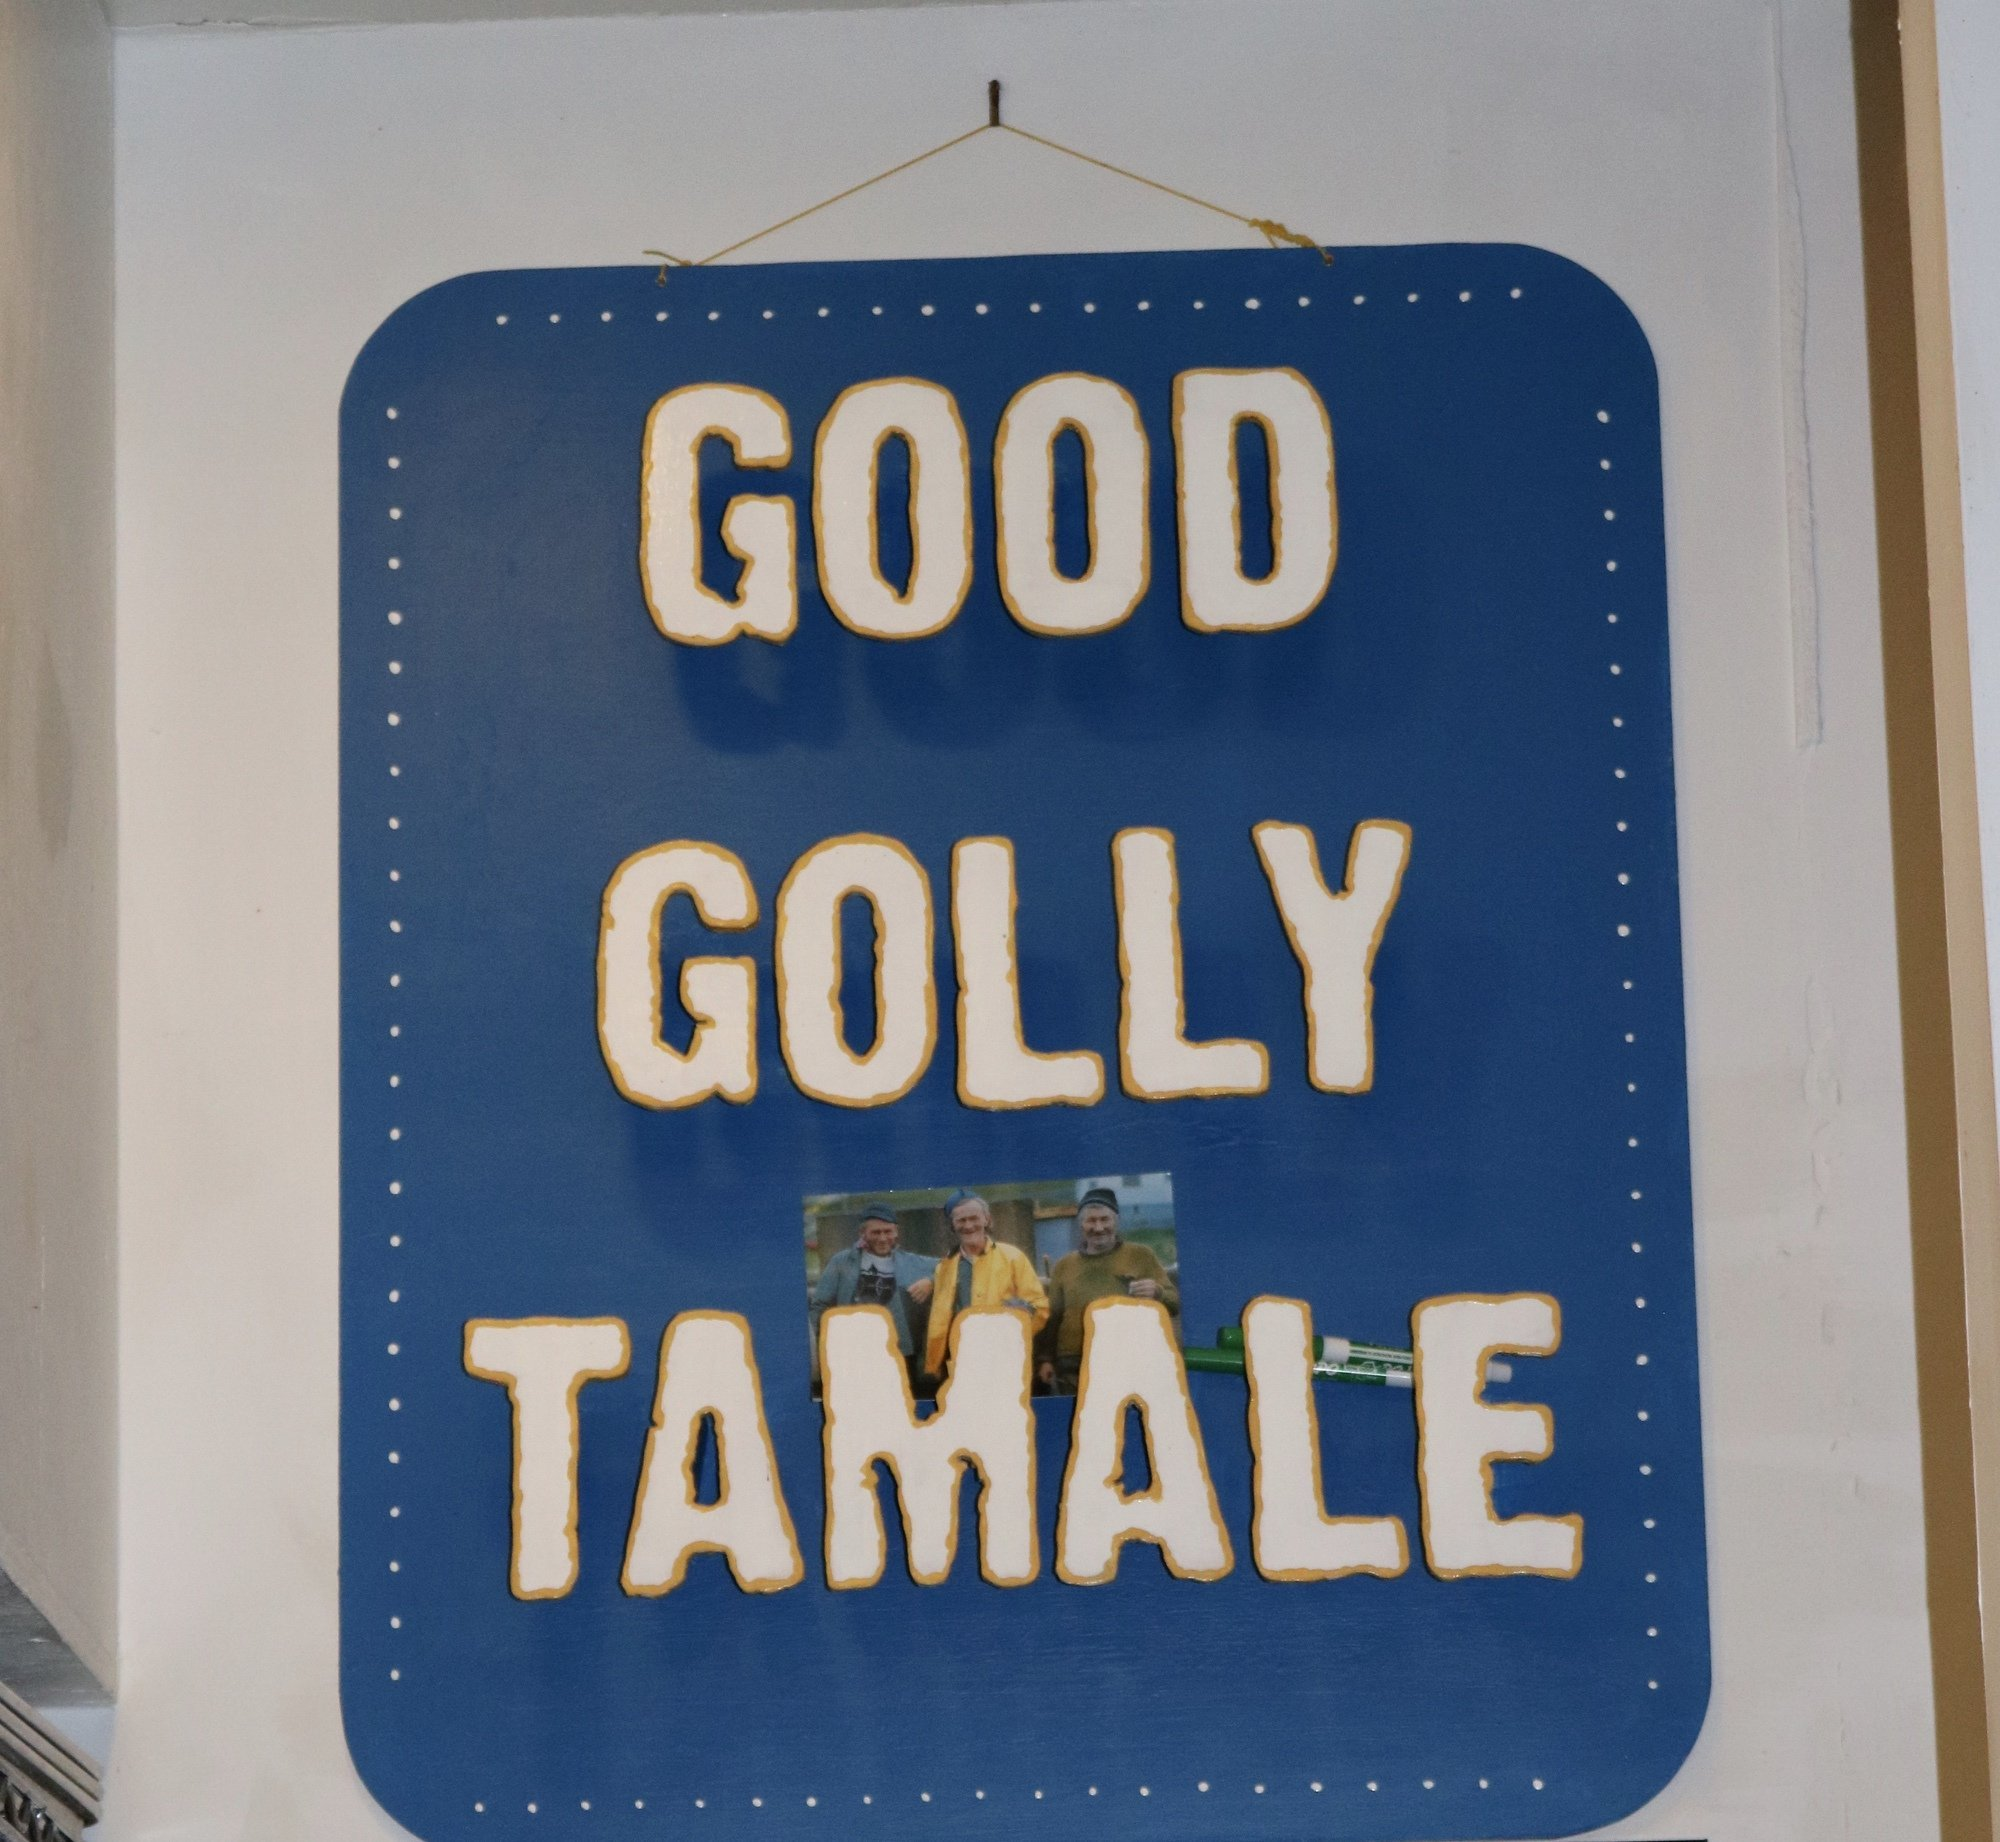 Good Golly Tamale a Saturday tradition in Knoxville 1